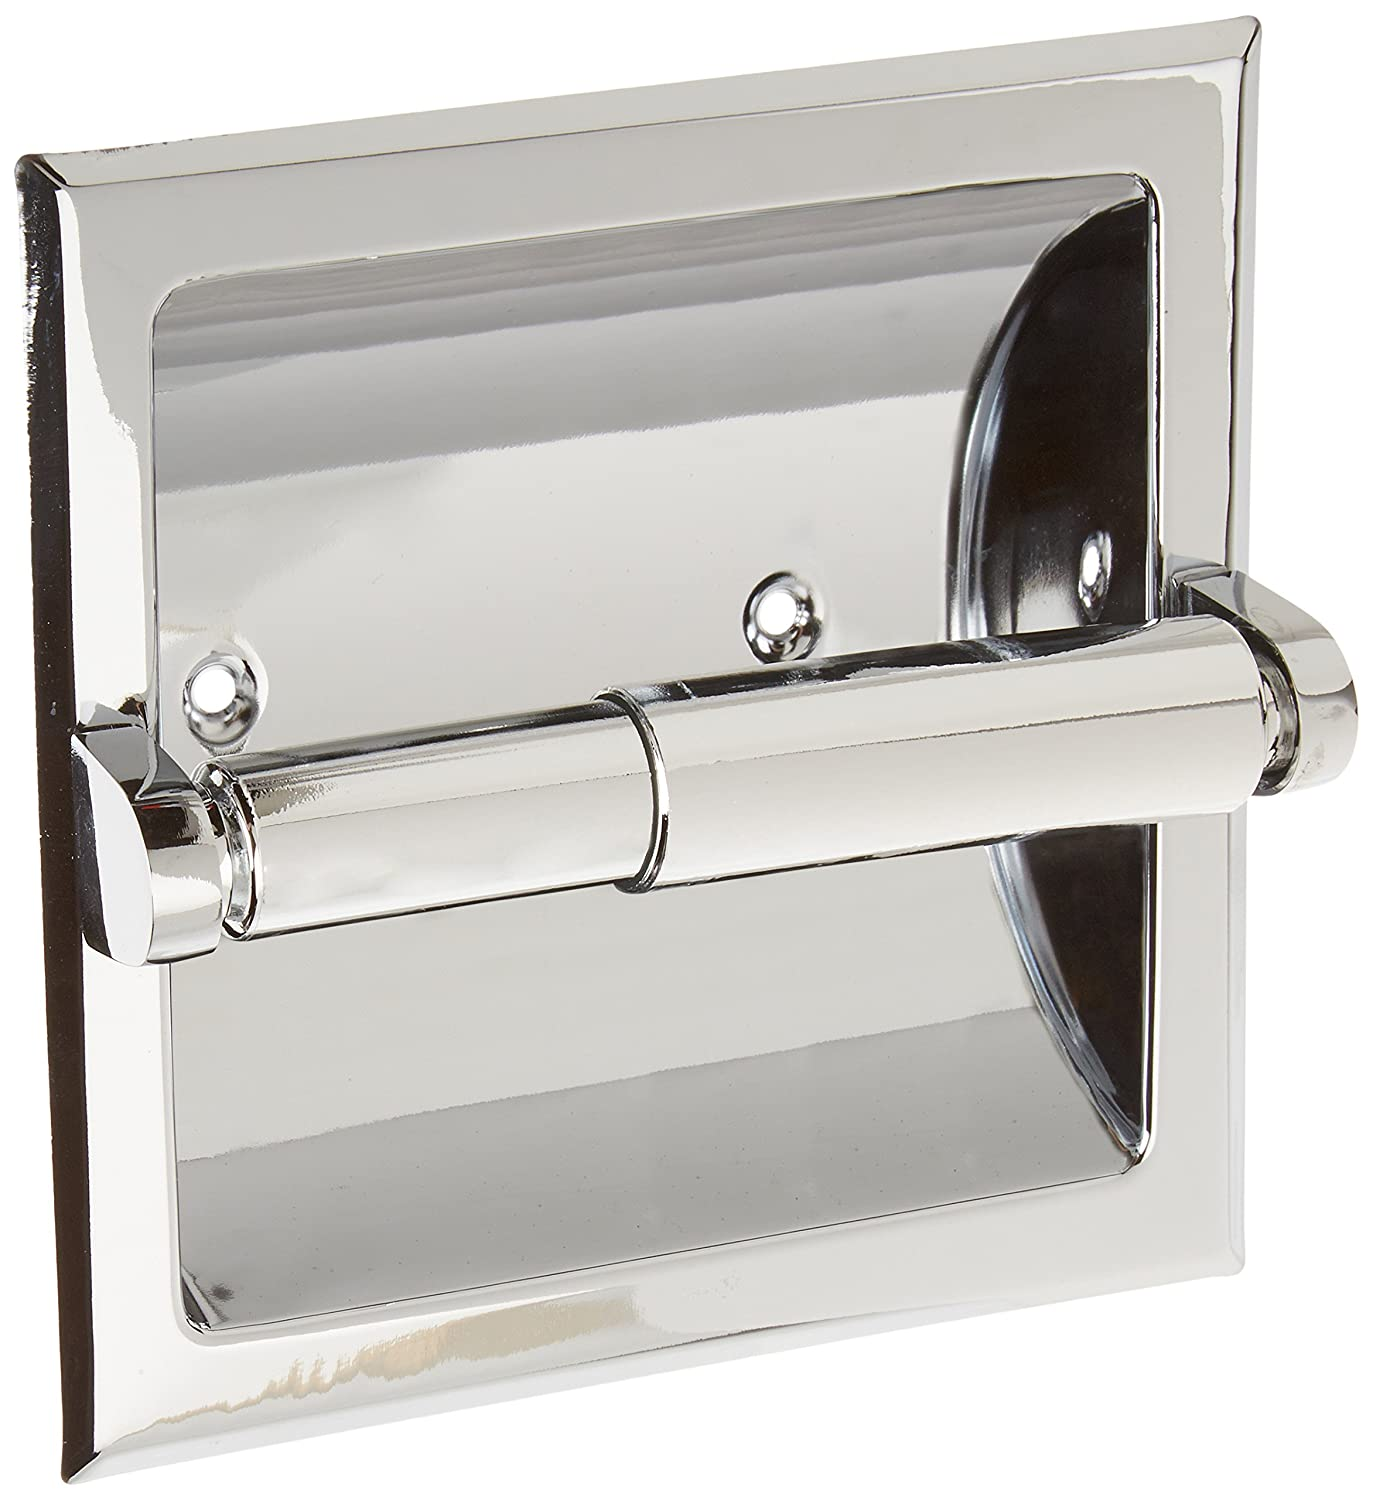 Moen 575 Donner Collection Recessed Paper Holder, Chrome - Toilet ...